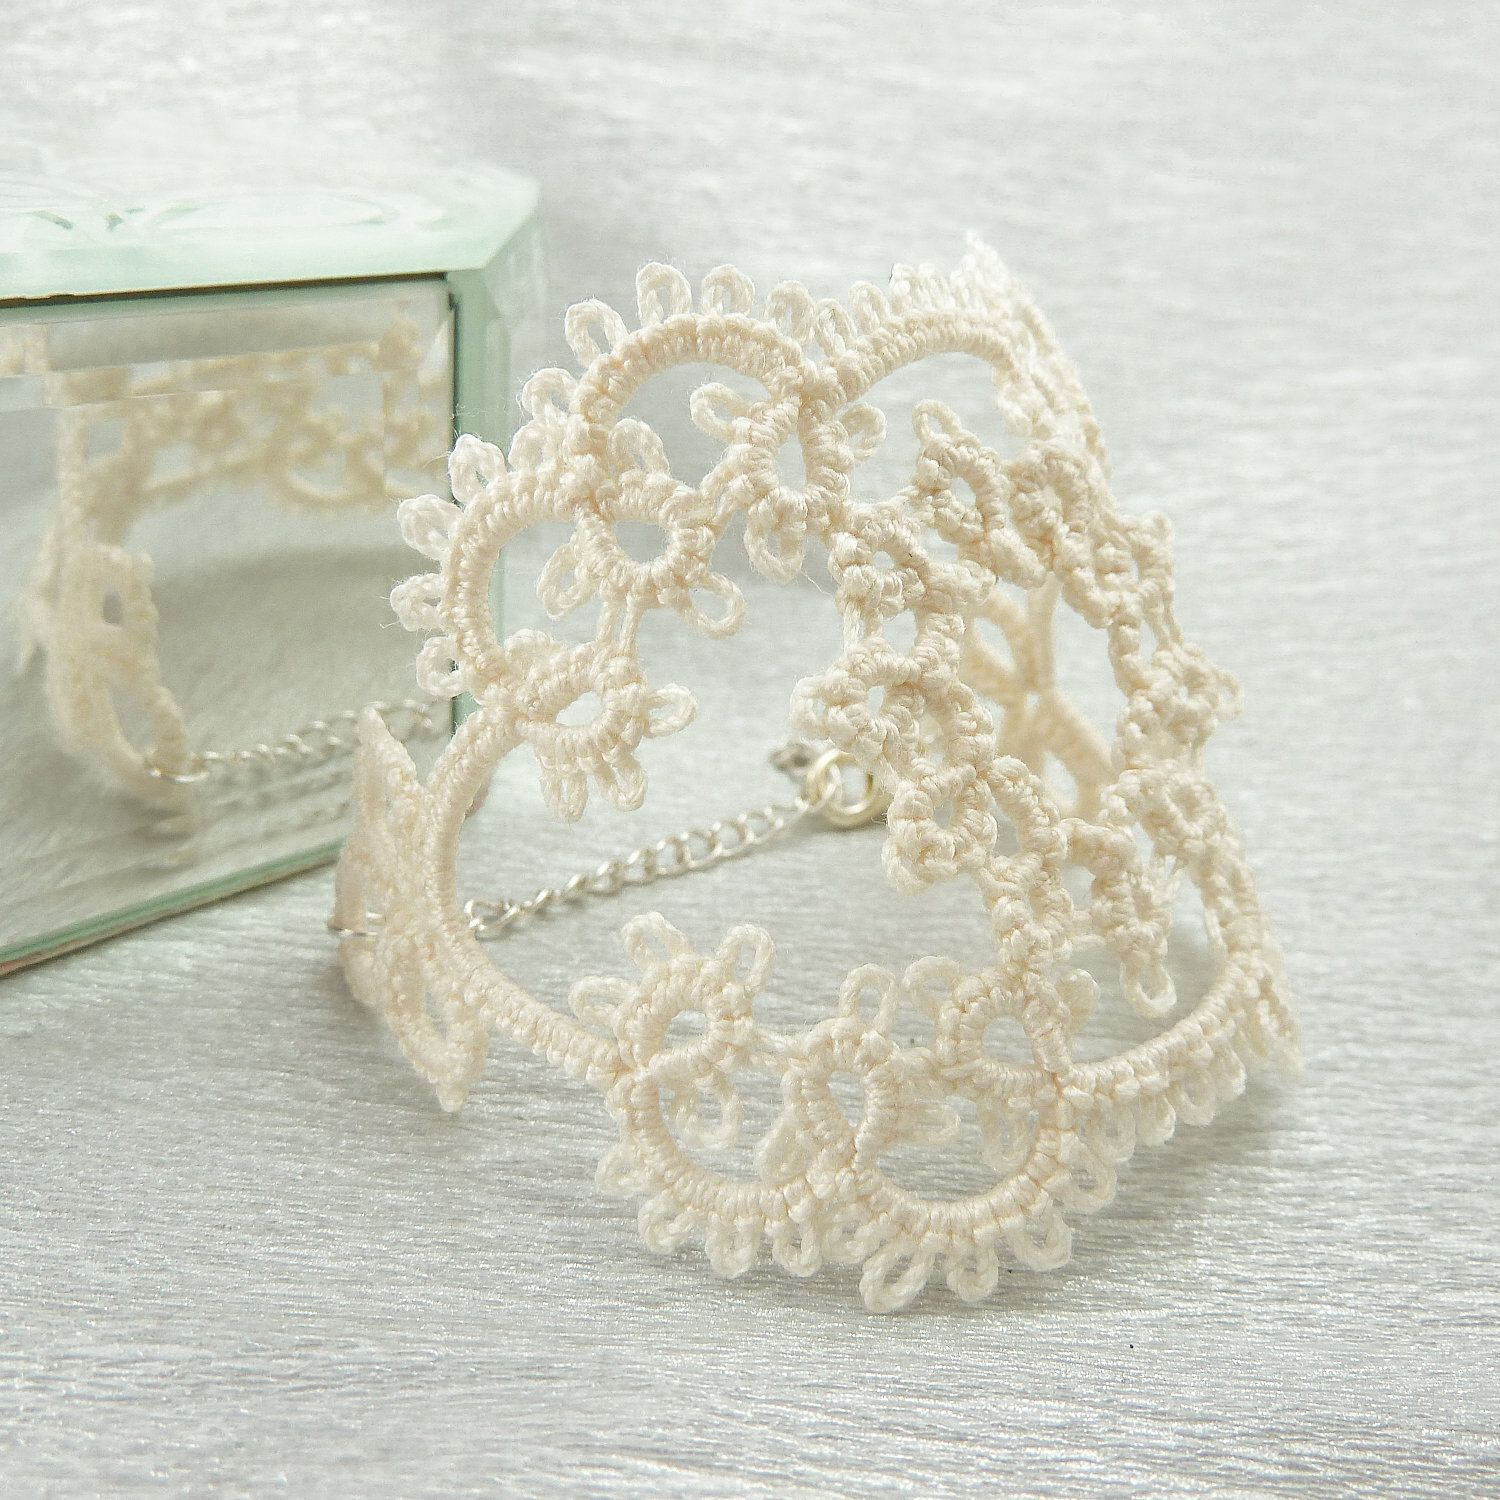 Lace bracelet in cream / lace jewelry / lace fashion / delicate jewelry / handmade lace. £29.00, via Etsy.